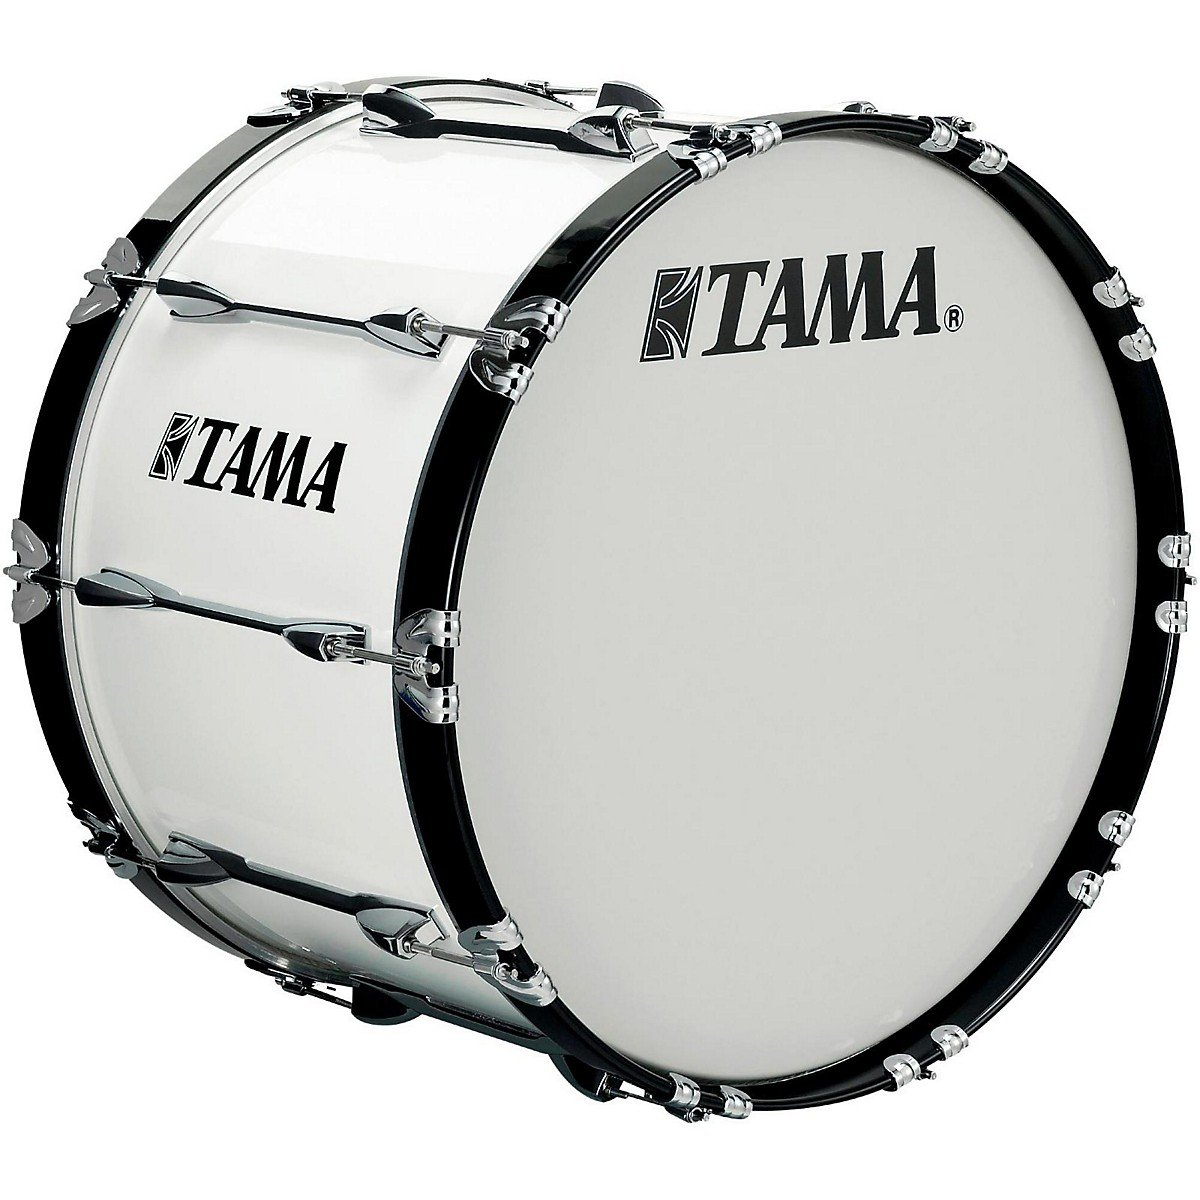 Tama Marching 24 x 14 in. Starlight Marching Bass Drum Sugar White by Tama Marching (Image #1)